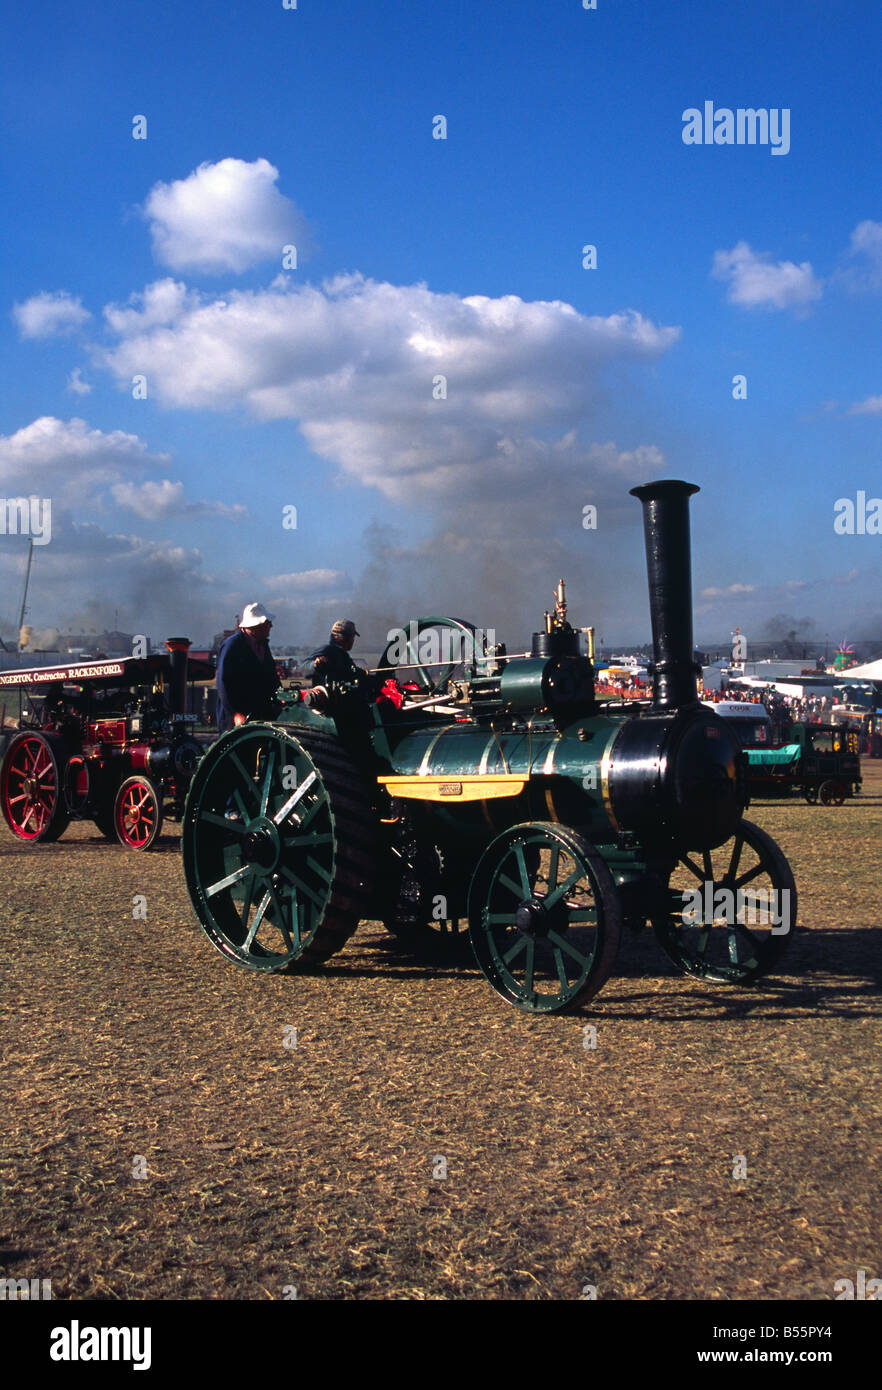 Richard Hornsby 8nhp General Purpose Engine Maggie - Stock Image